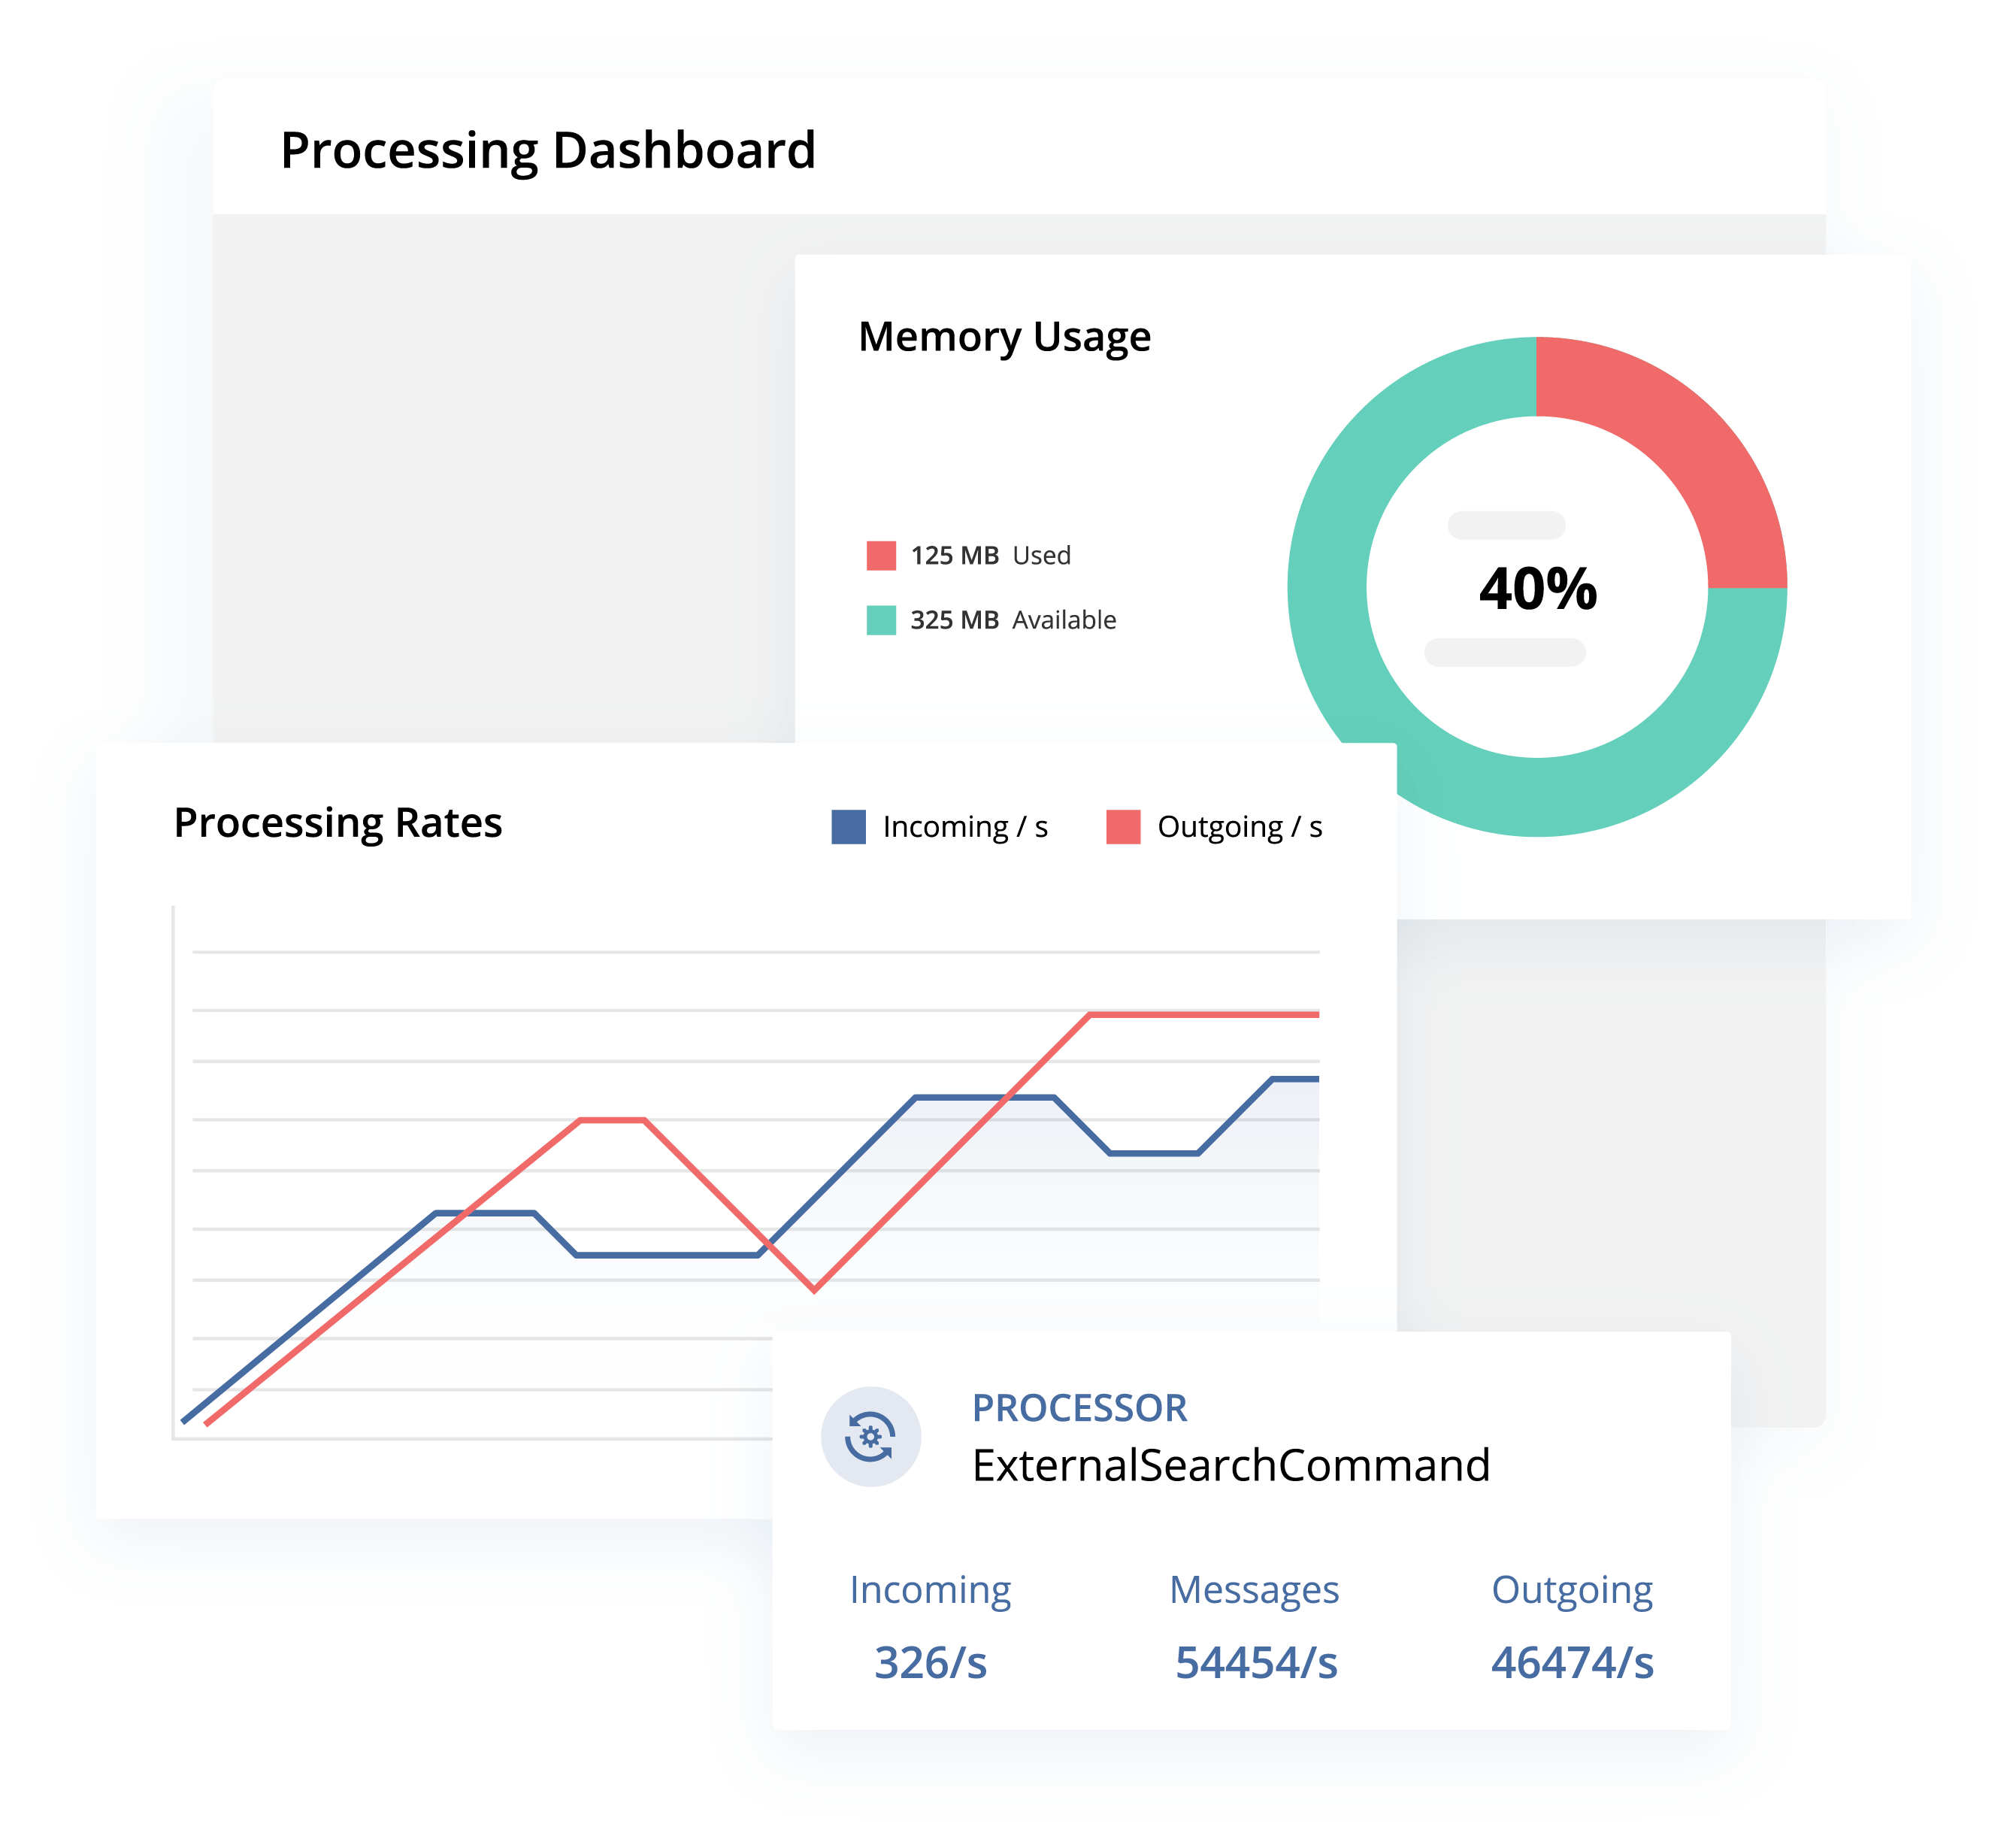 Data Processing Overview